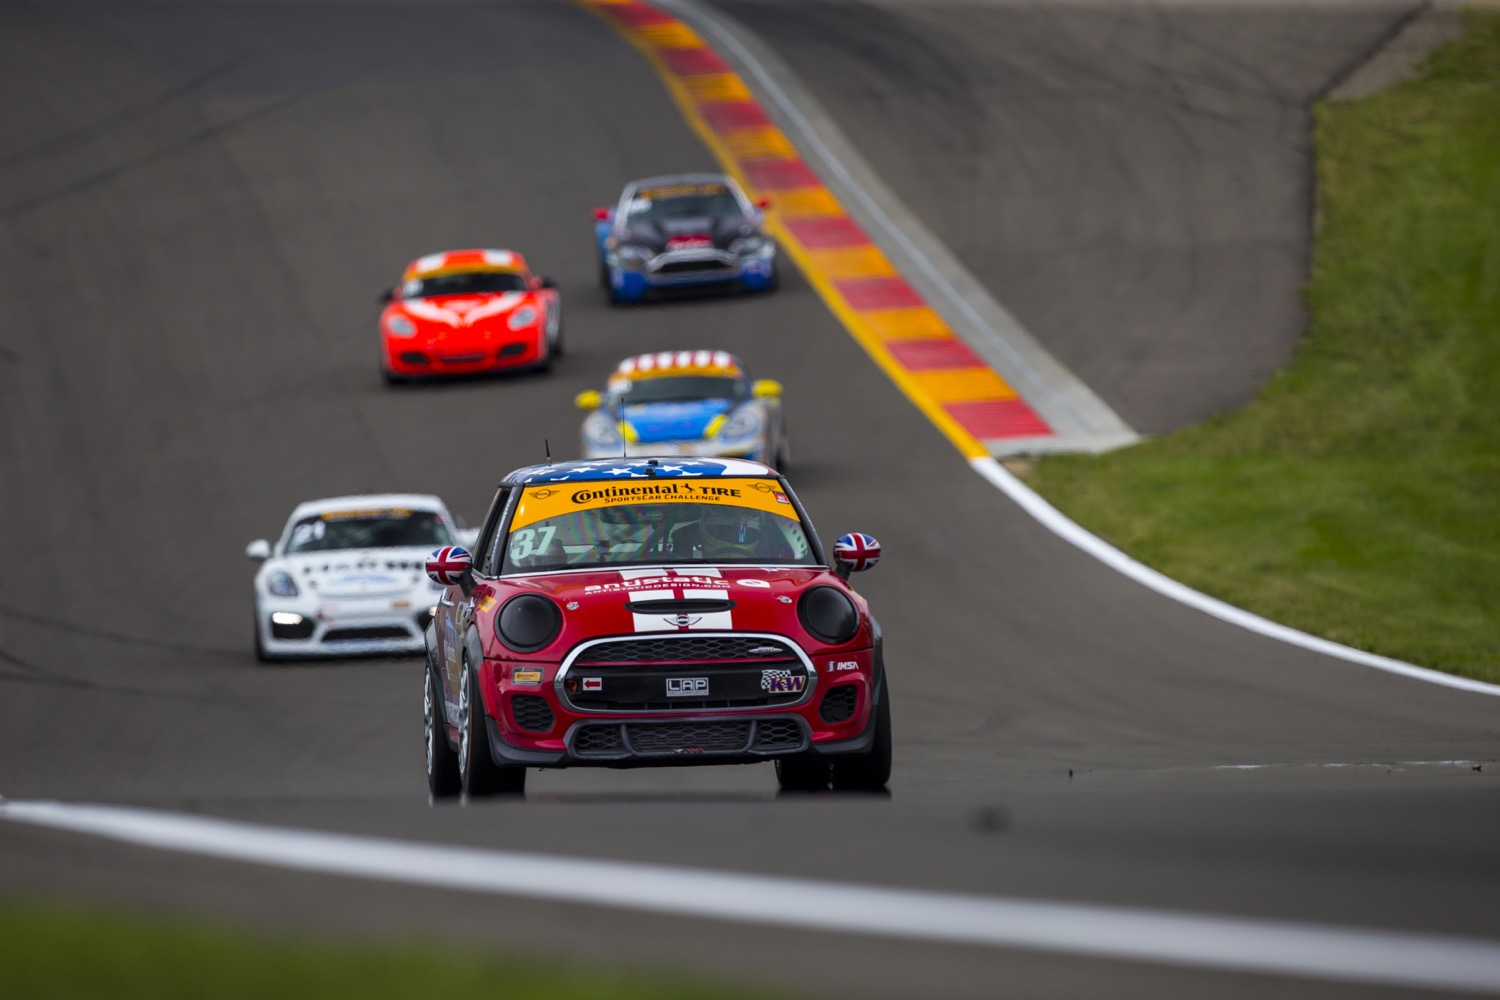 MINI JCW Team Revs Up for Lime Rock after Two Consecutive Commanding Performances